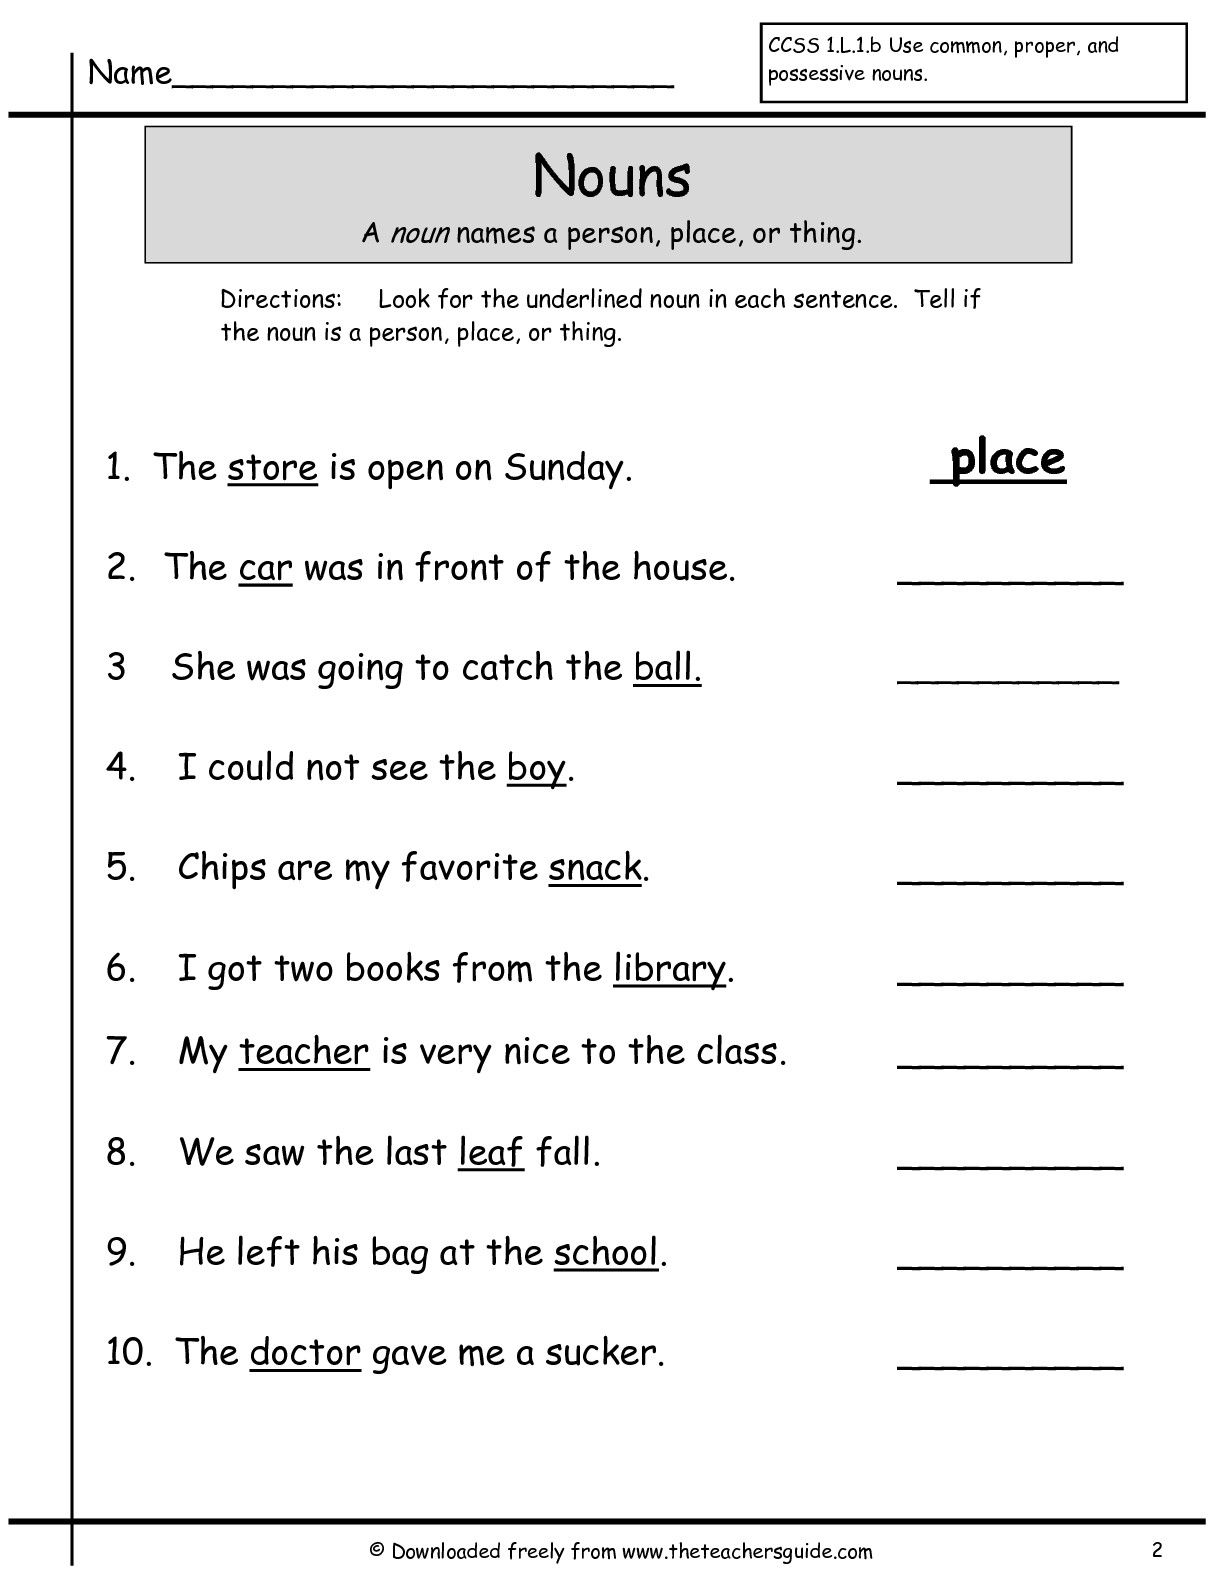 Worksheets Noun Worksheets For 1st Grade nouns grade 1 worksheets google search kelina pinterest search